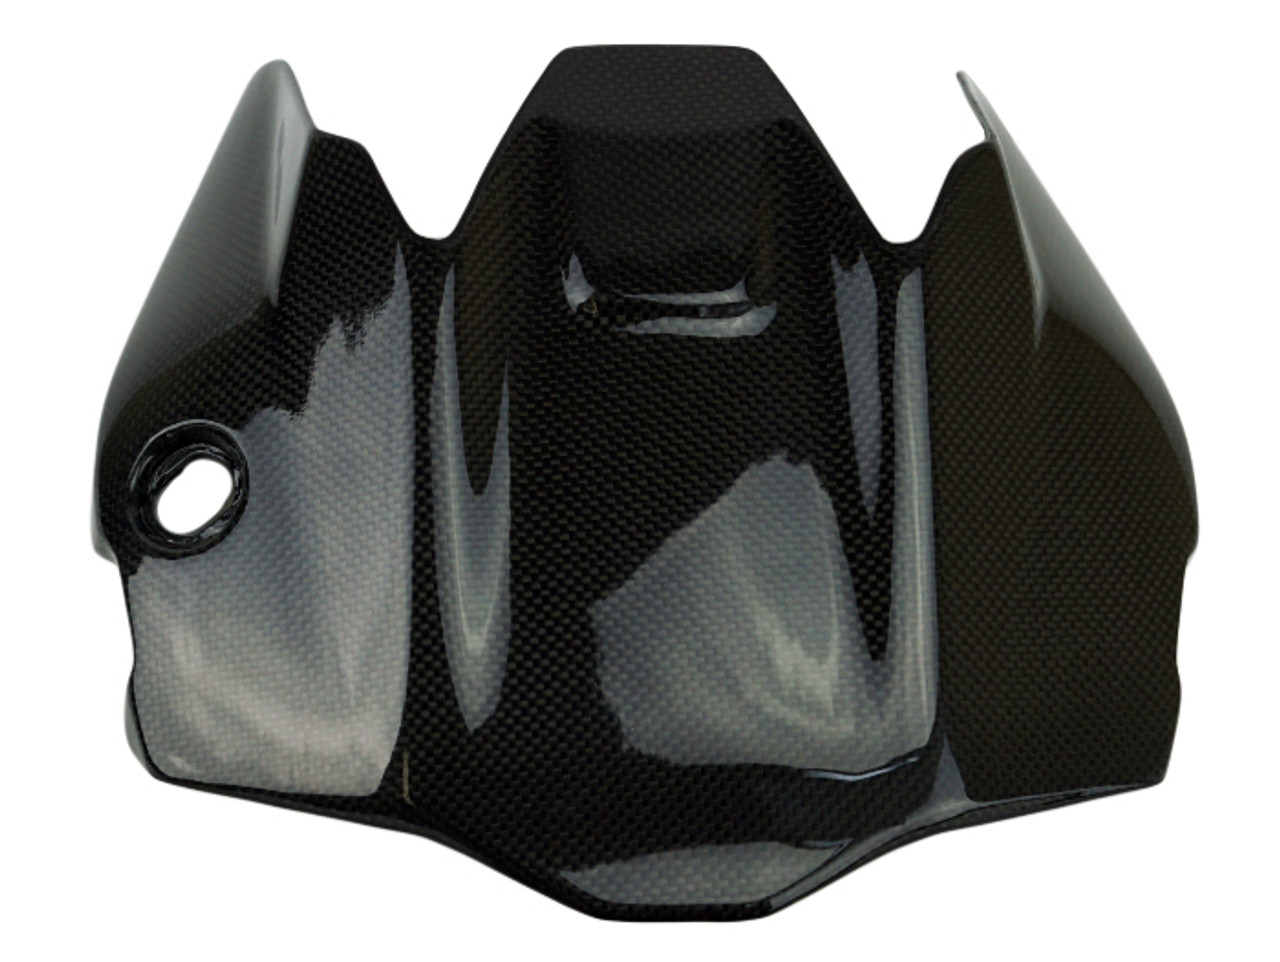 Undertray in Glossy Plain Weave Carbon Fiber for Ducati Monster 821 2018+ and 1200(S) 2017+